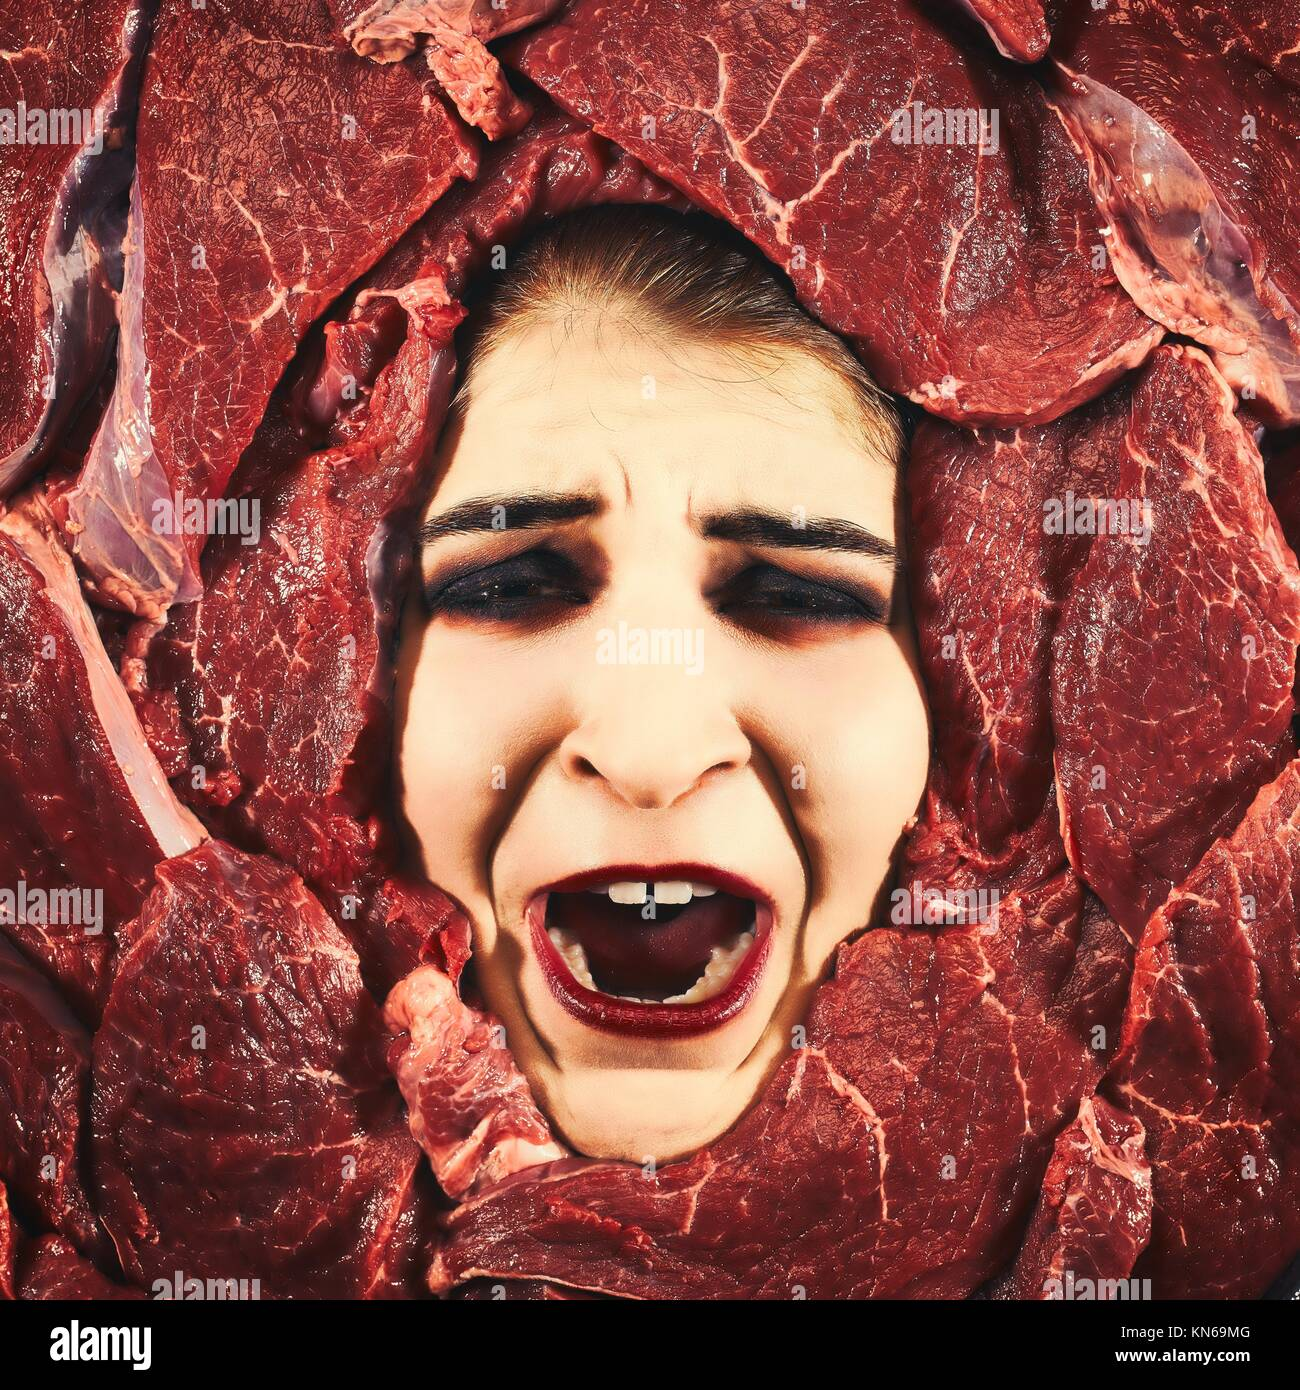 Beautiful woman expression face with beef frame, cross-processed image. - Stock Image